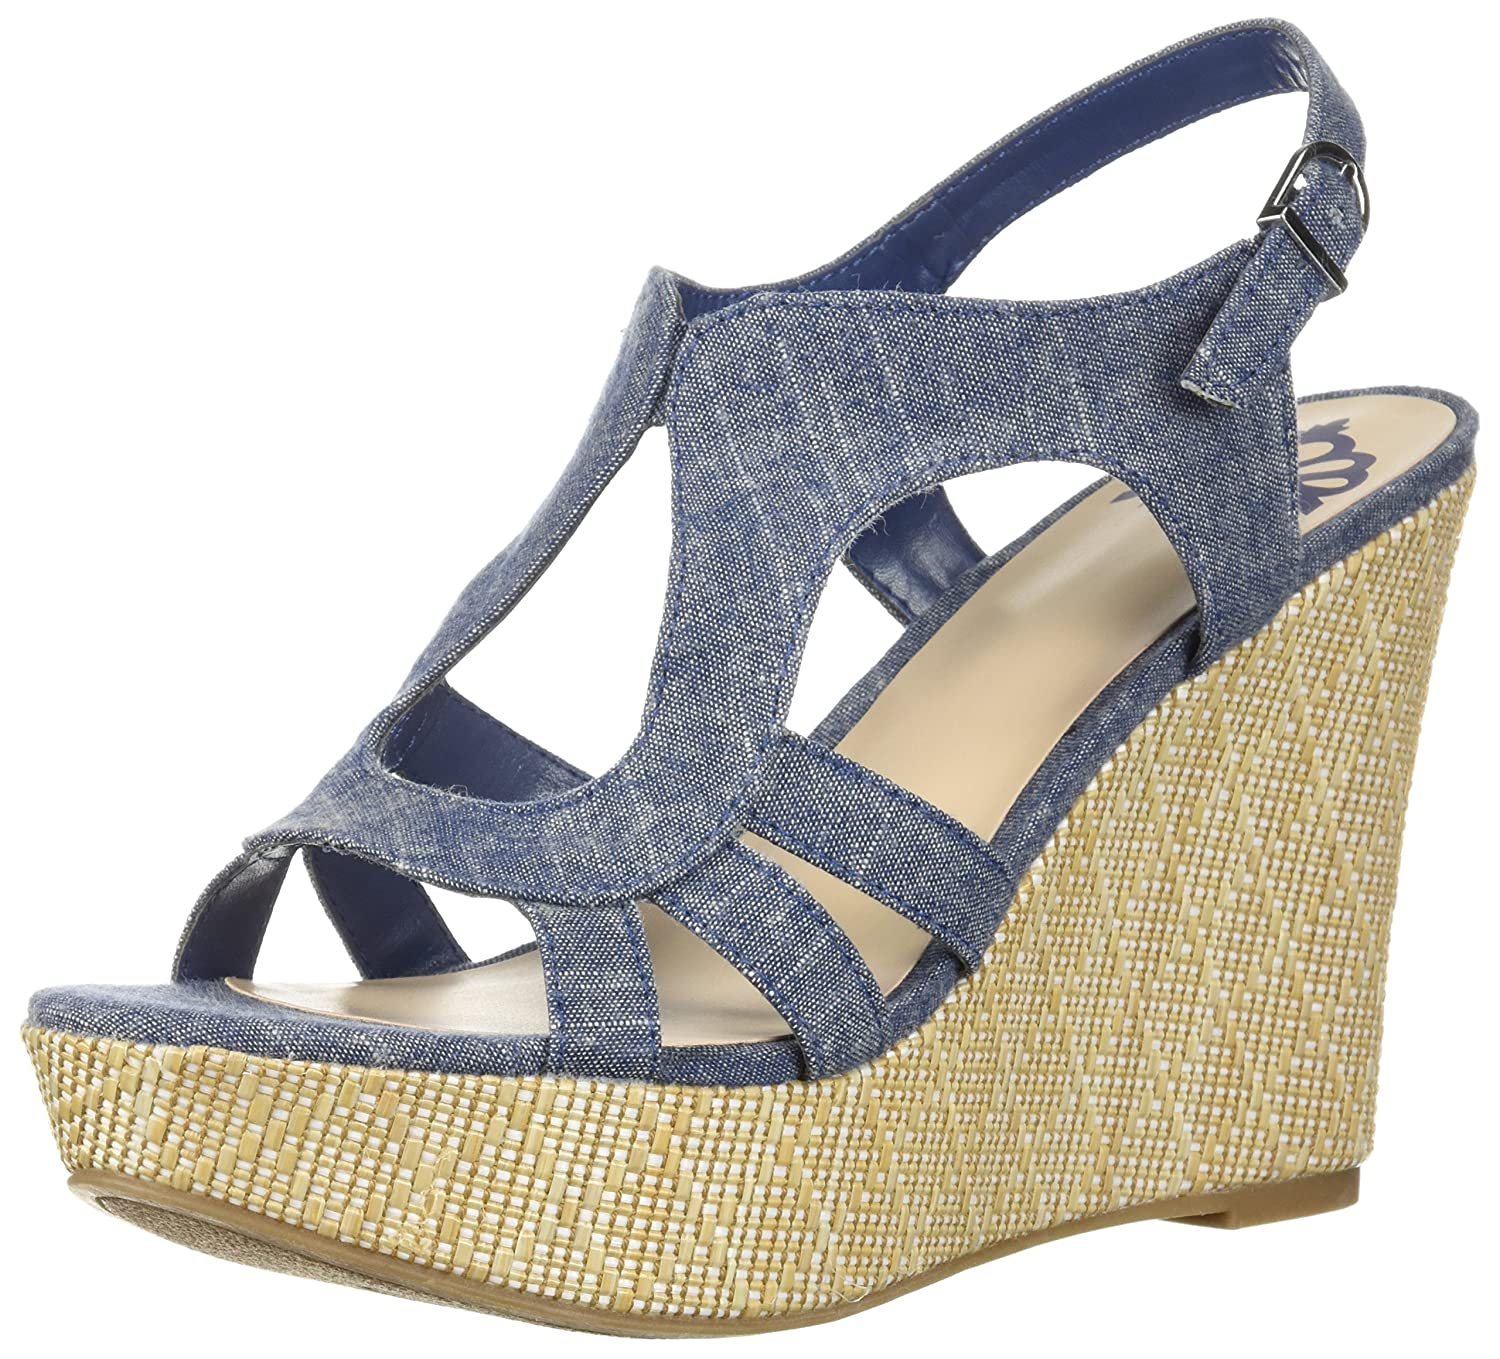 Fergalicious Women's Vista Wedge Sandal B07618SZHW 7 B(M) US|Denim